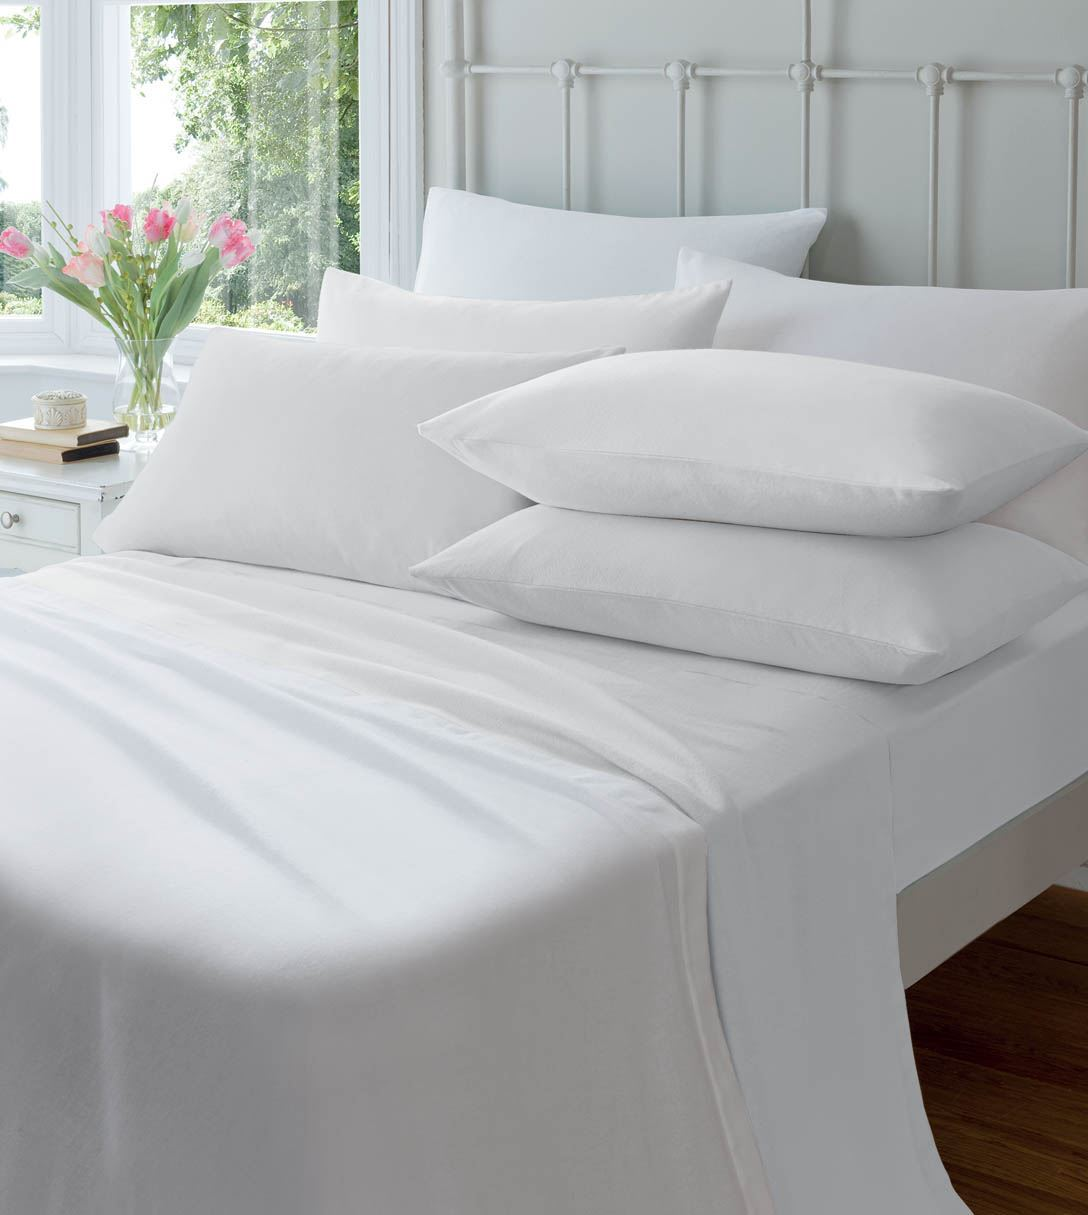 Extra Deep Flannelette Fitted Sheets Warm Soft Brushed